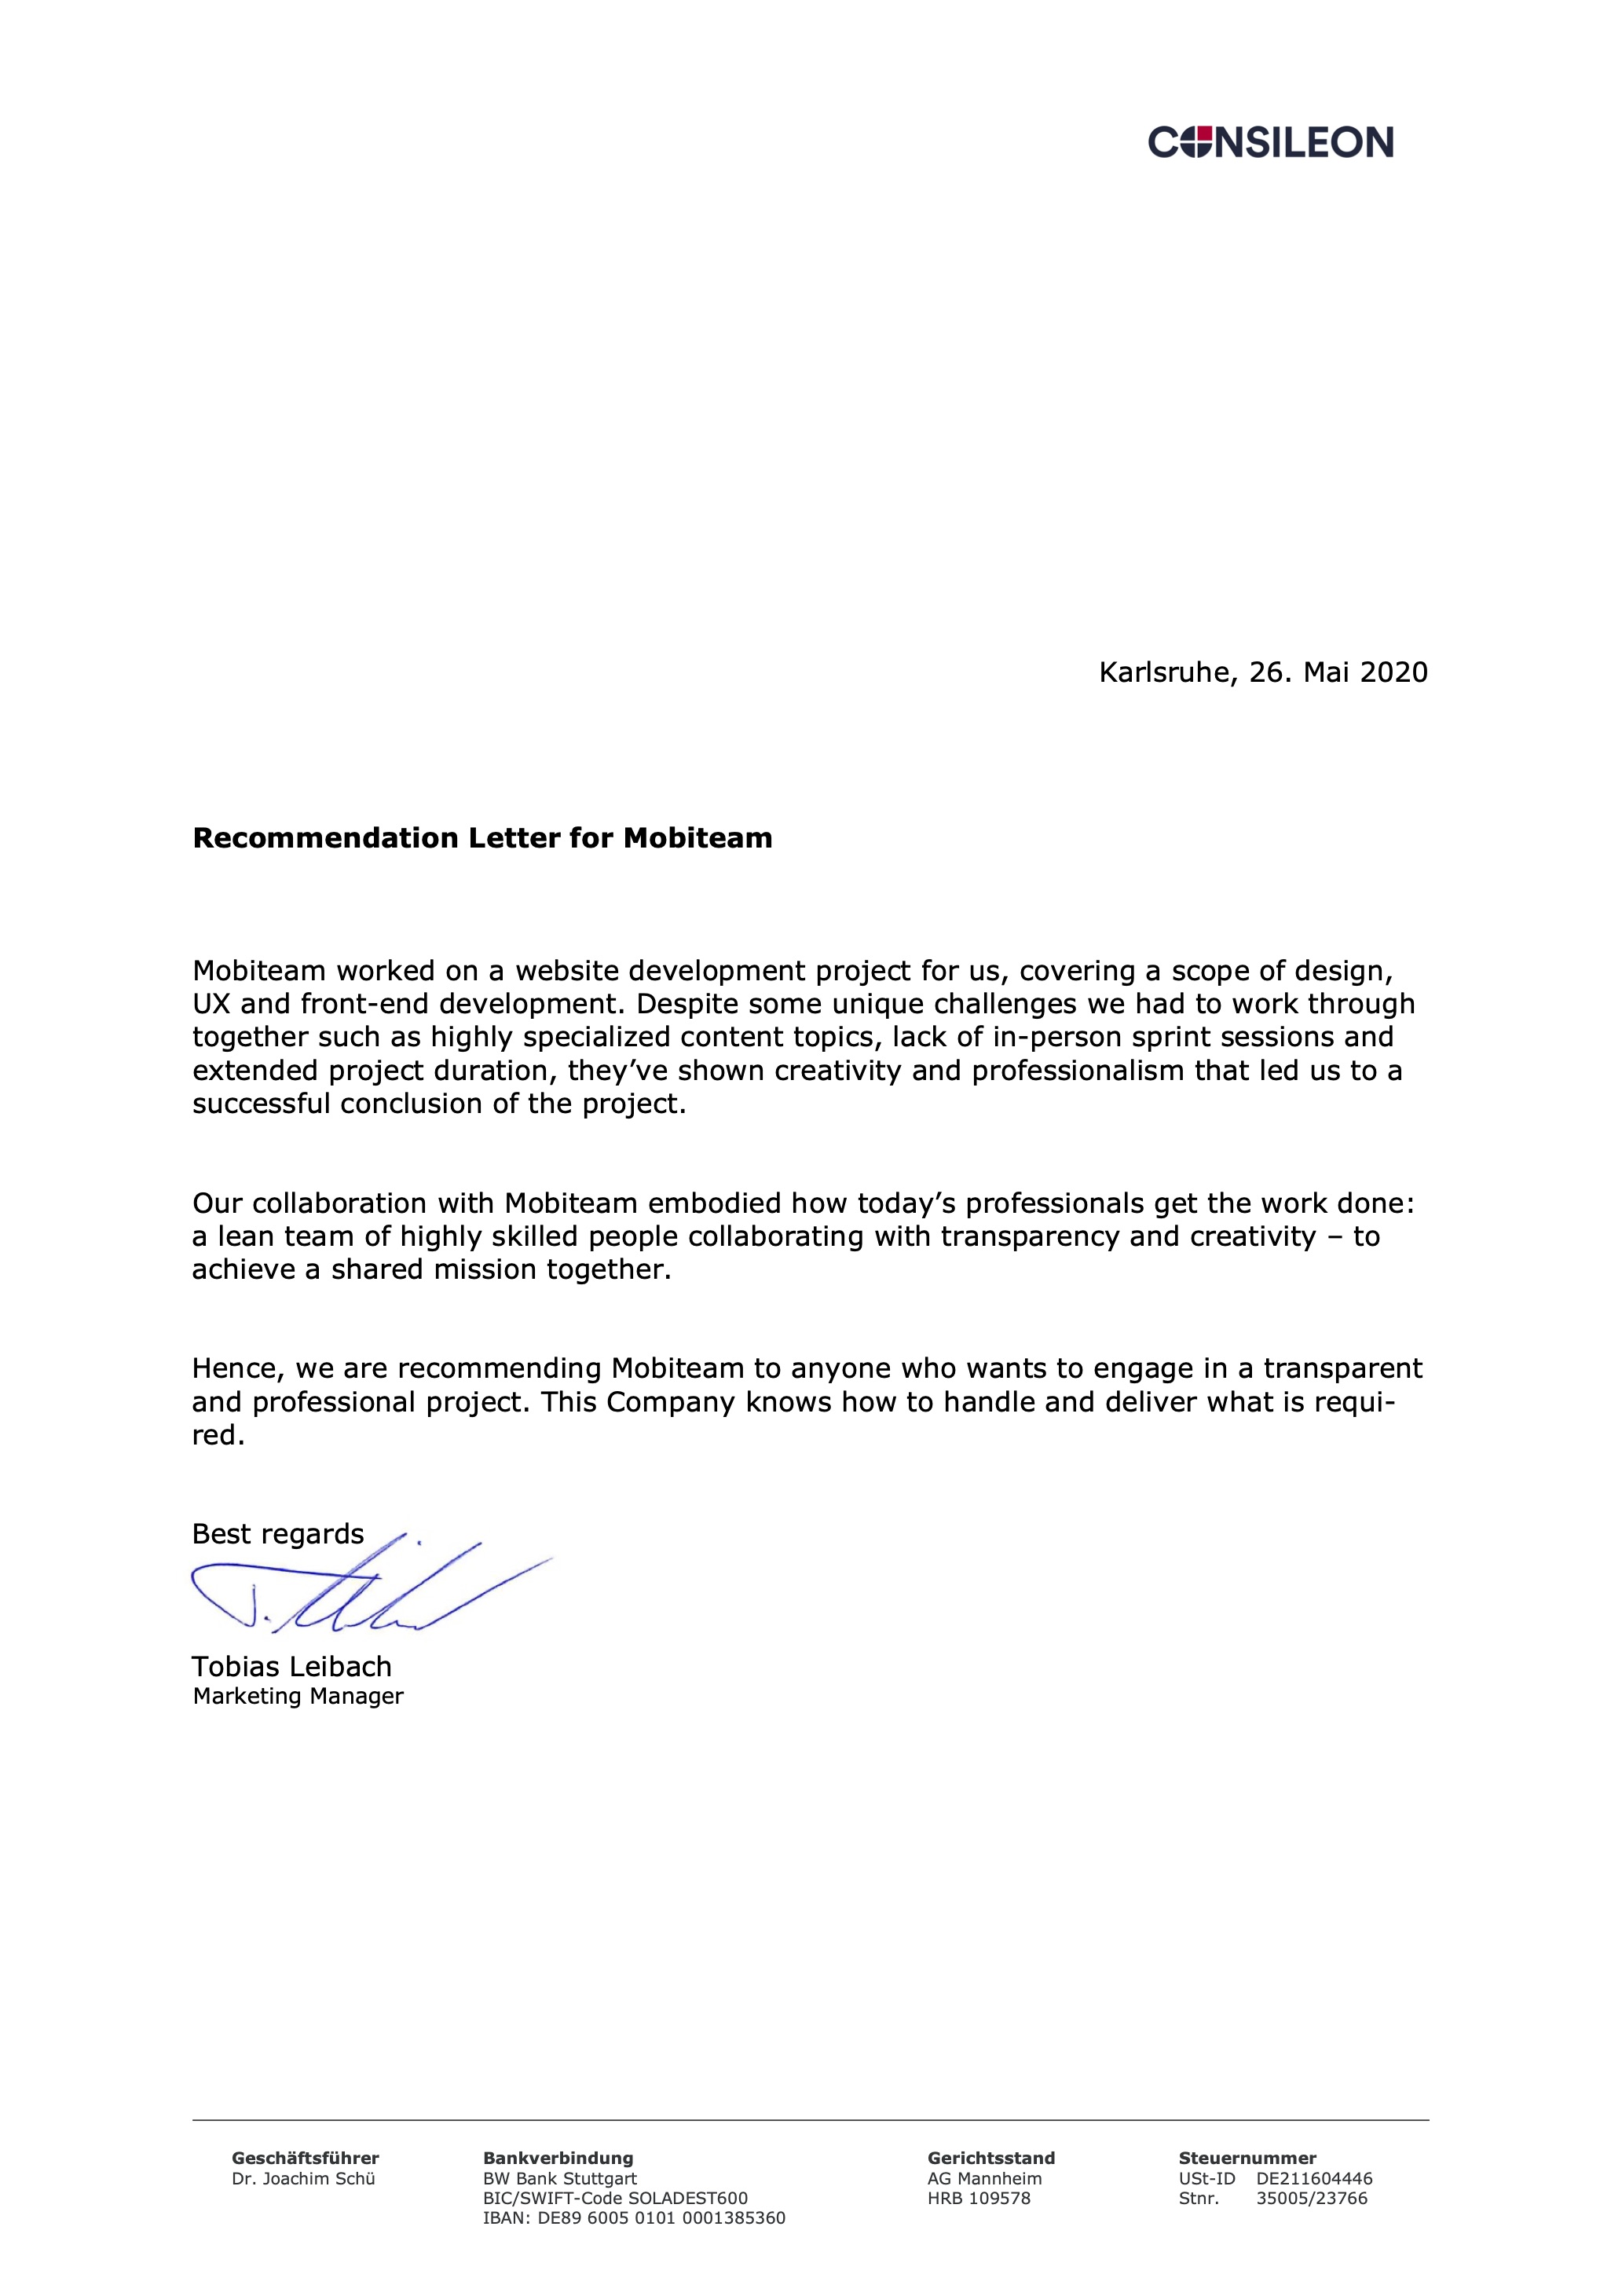 20200526-recommendation-letter-for-mobiteam-2